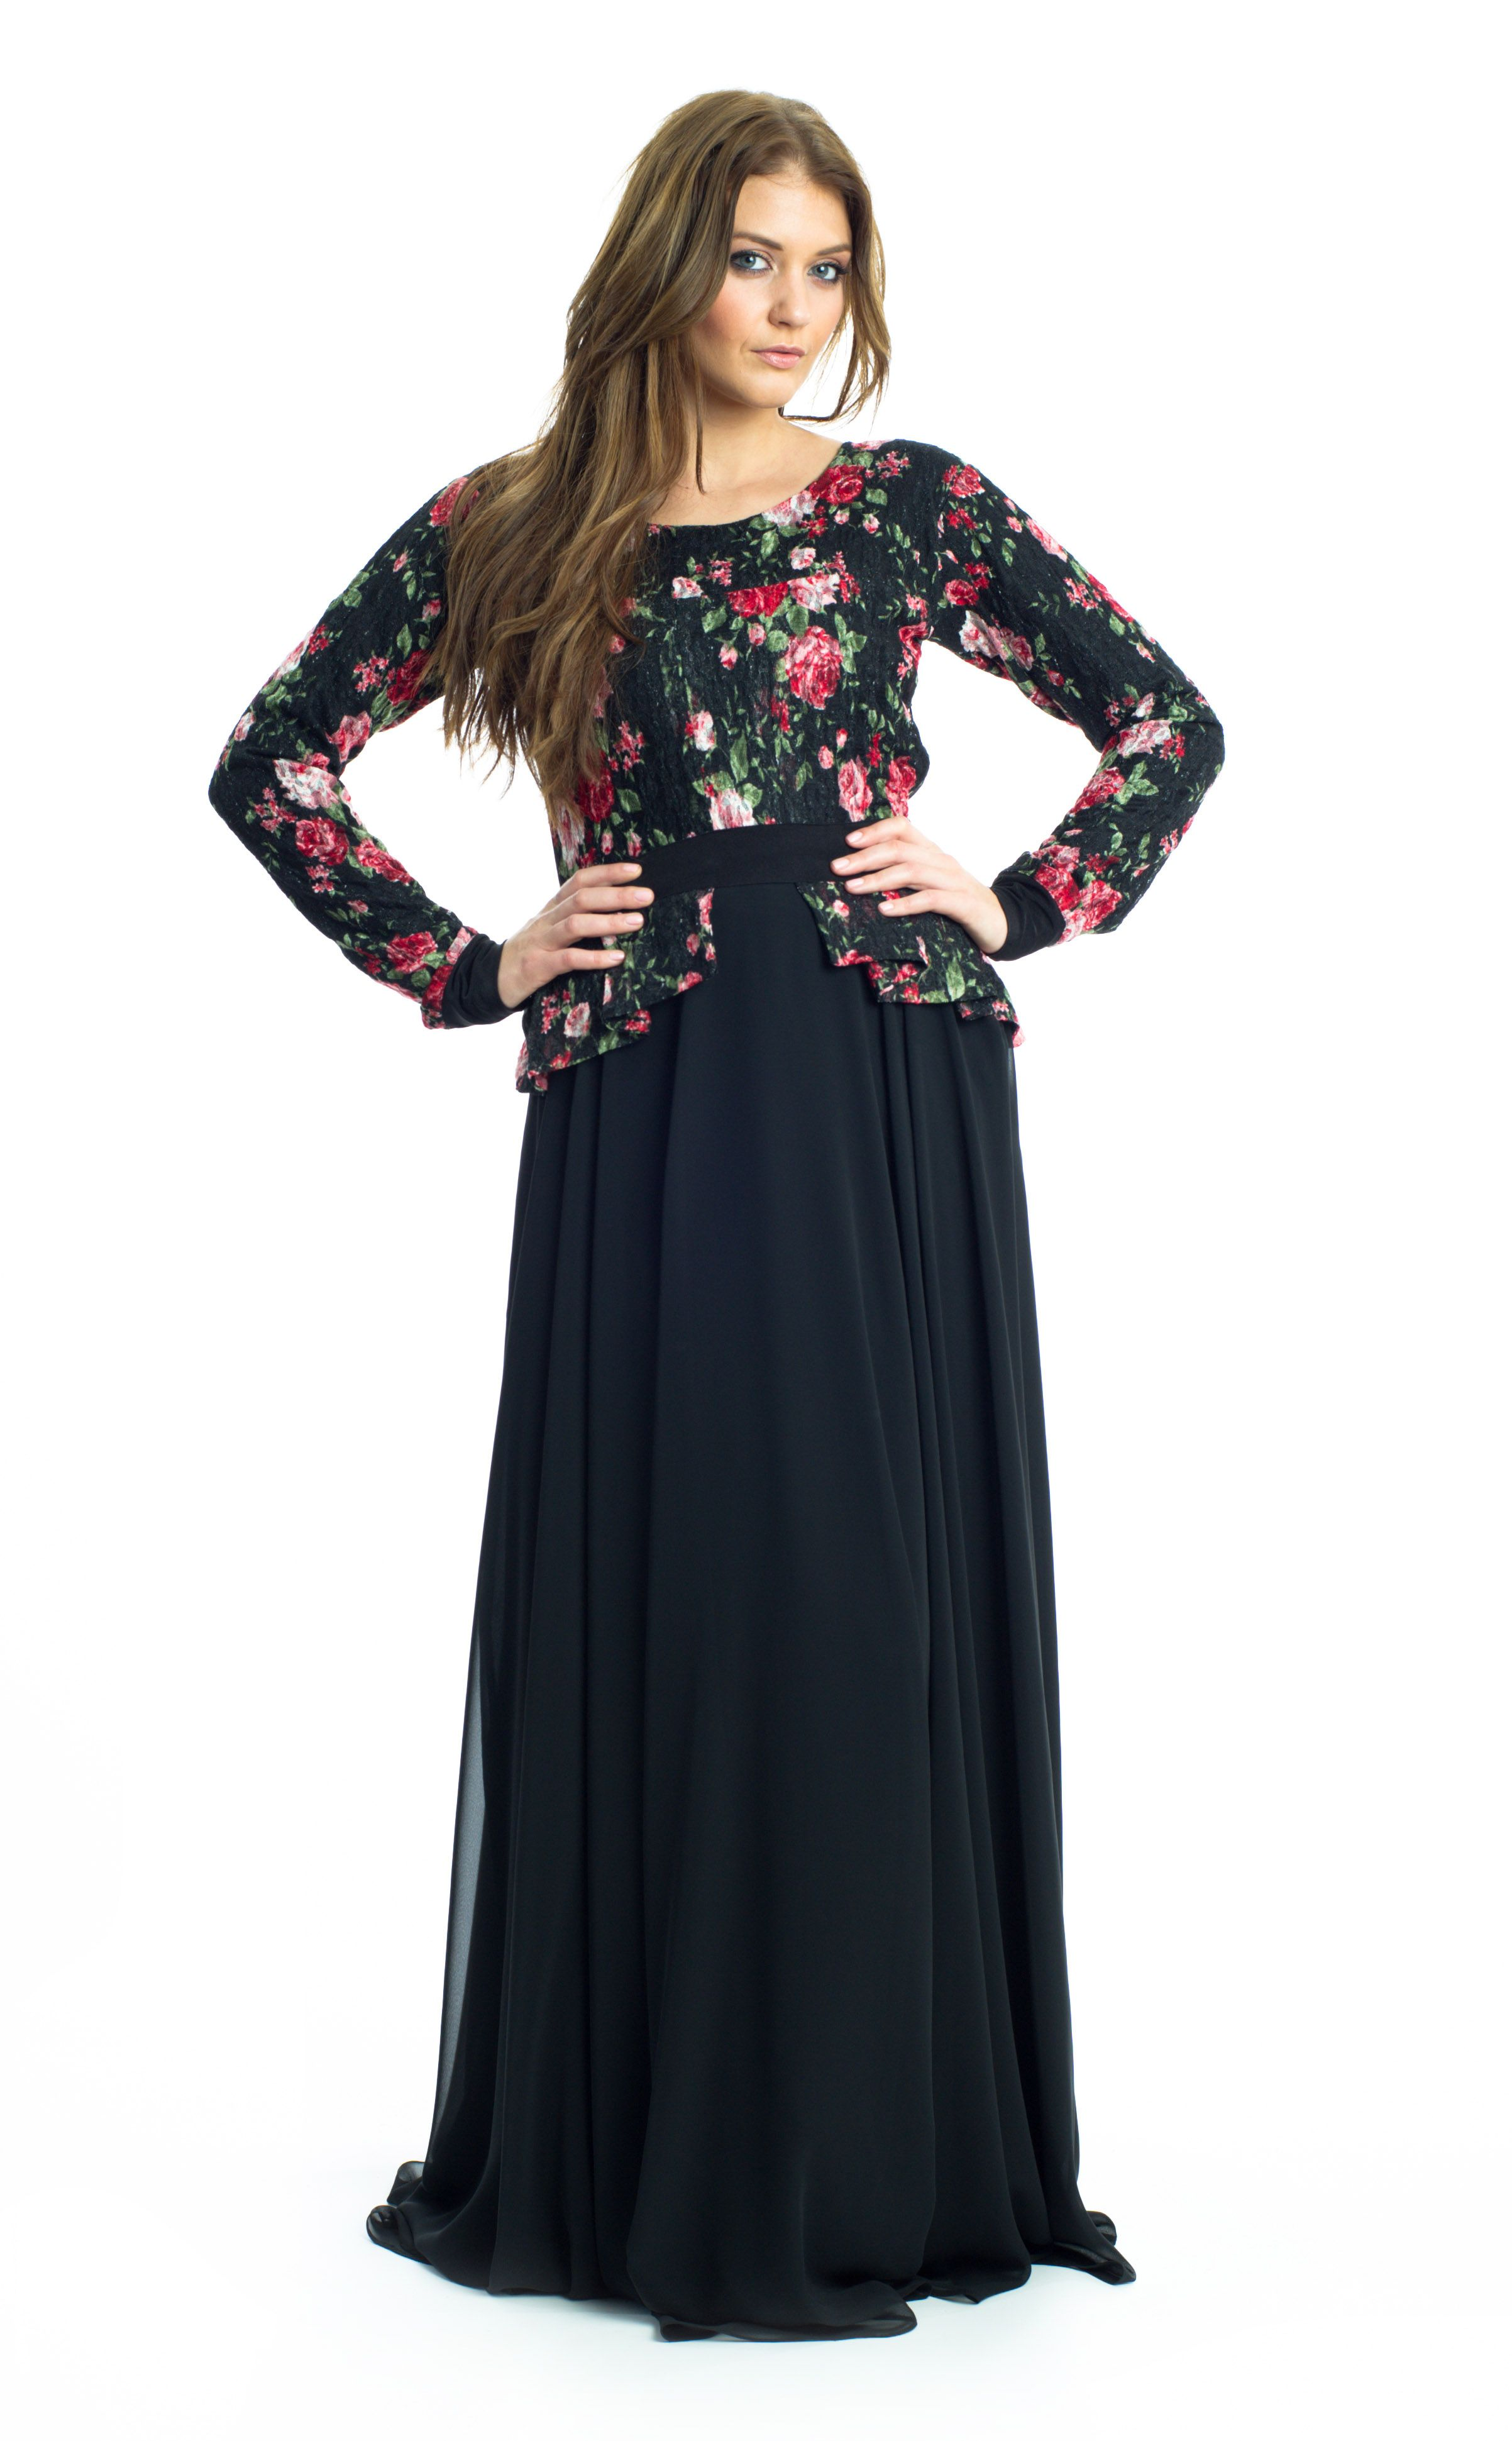 fdc3f3732 The Central Park Dress. Black, Beige and Multi-Colored Abaya Dress * Floral